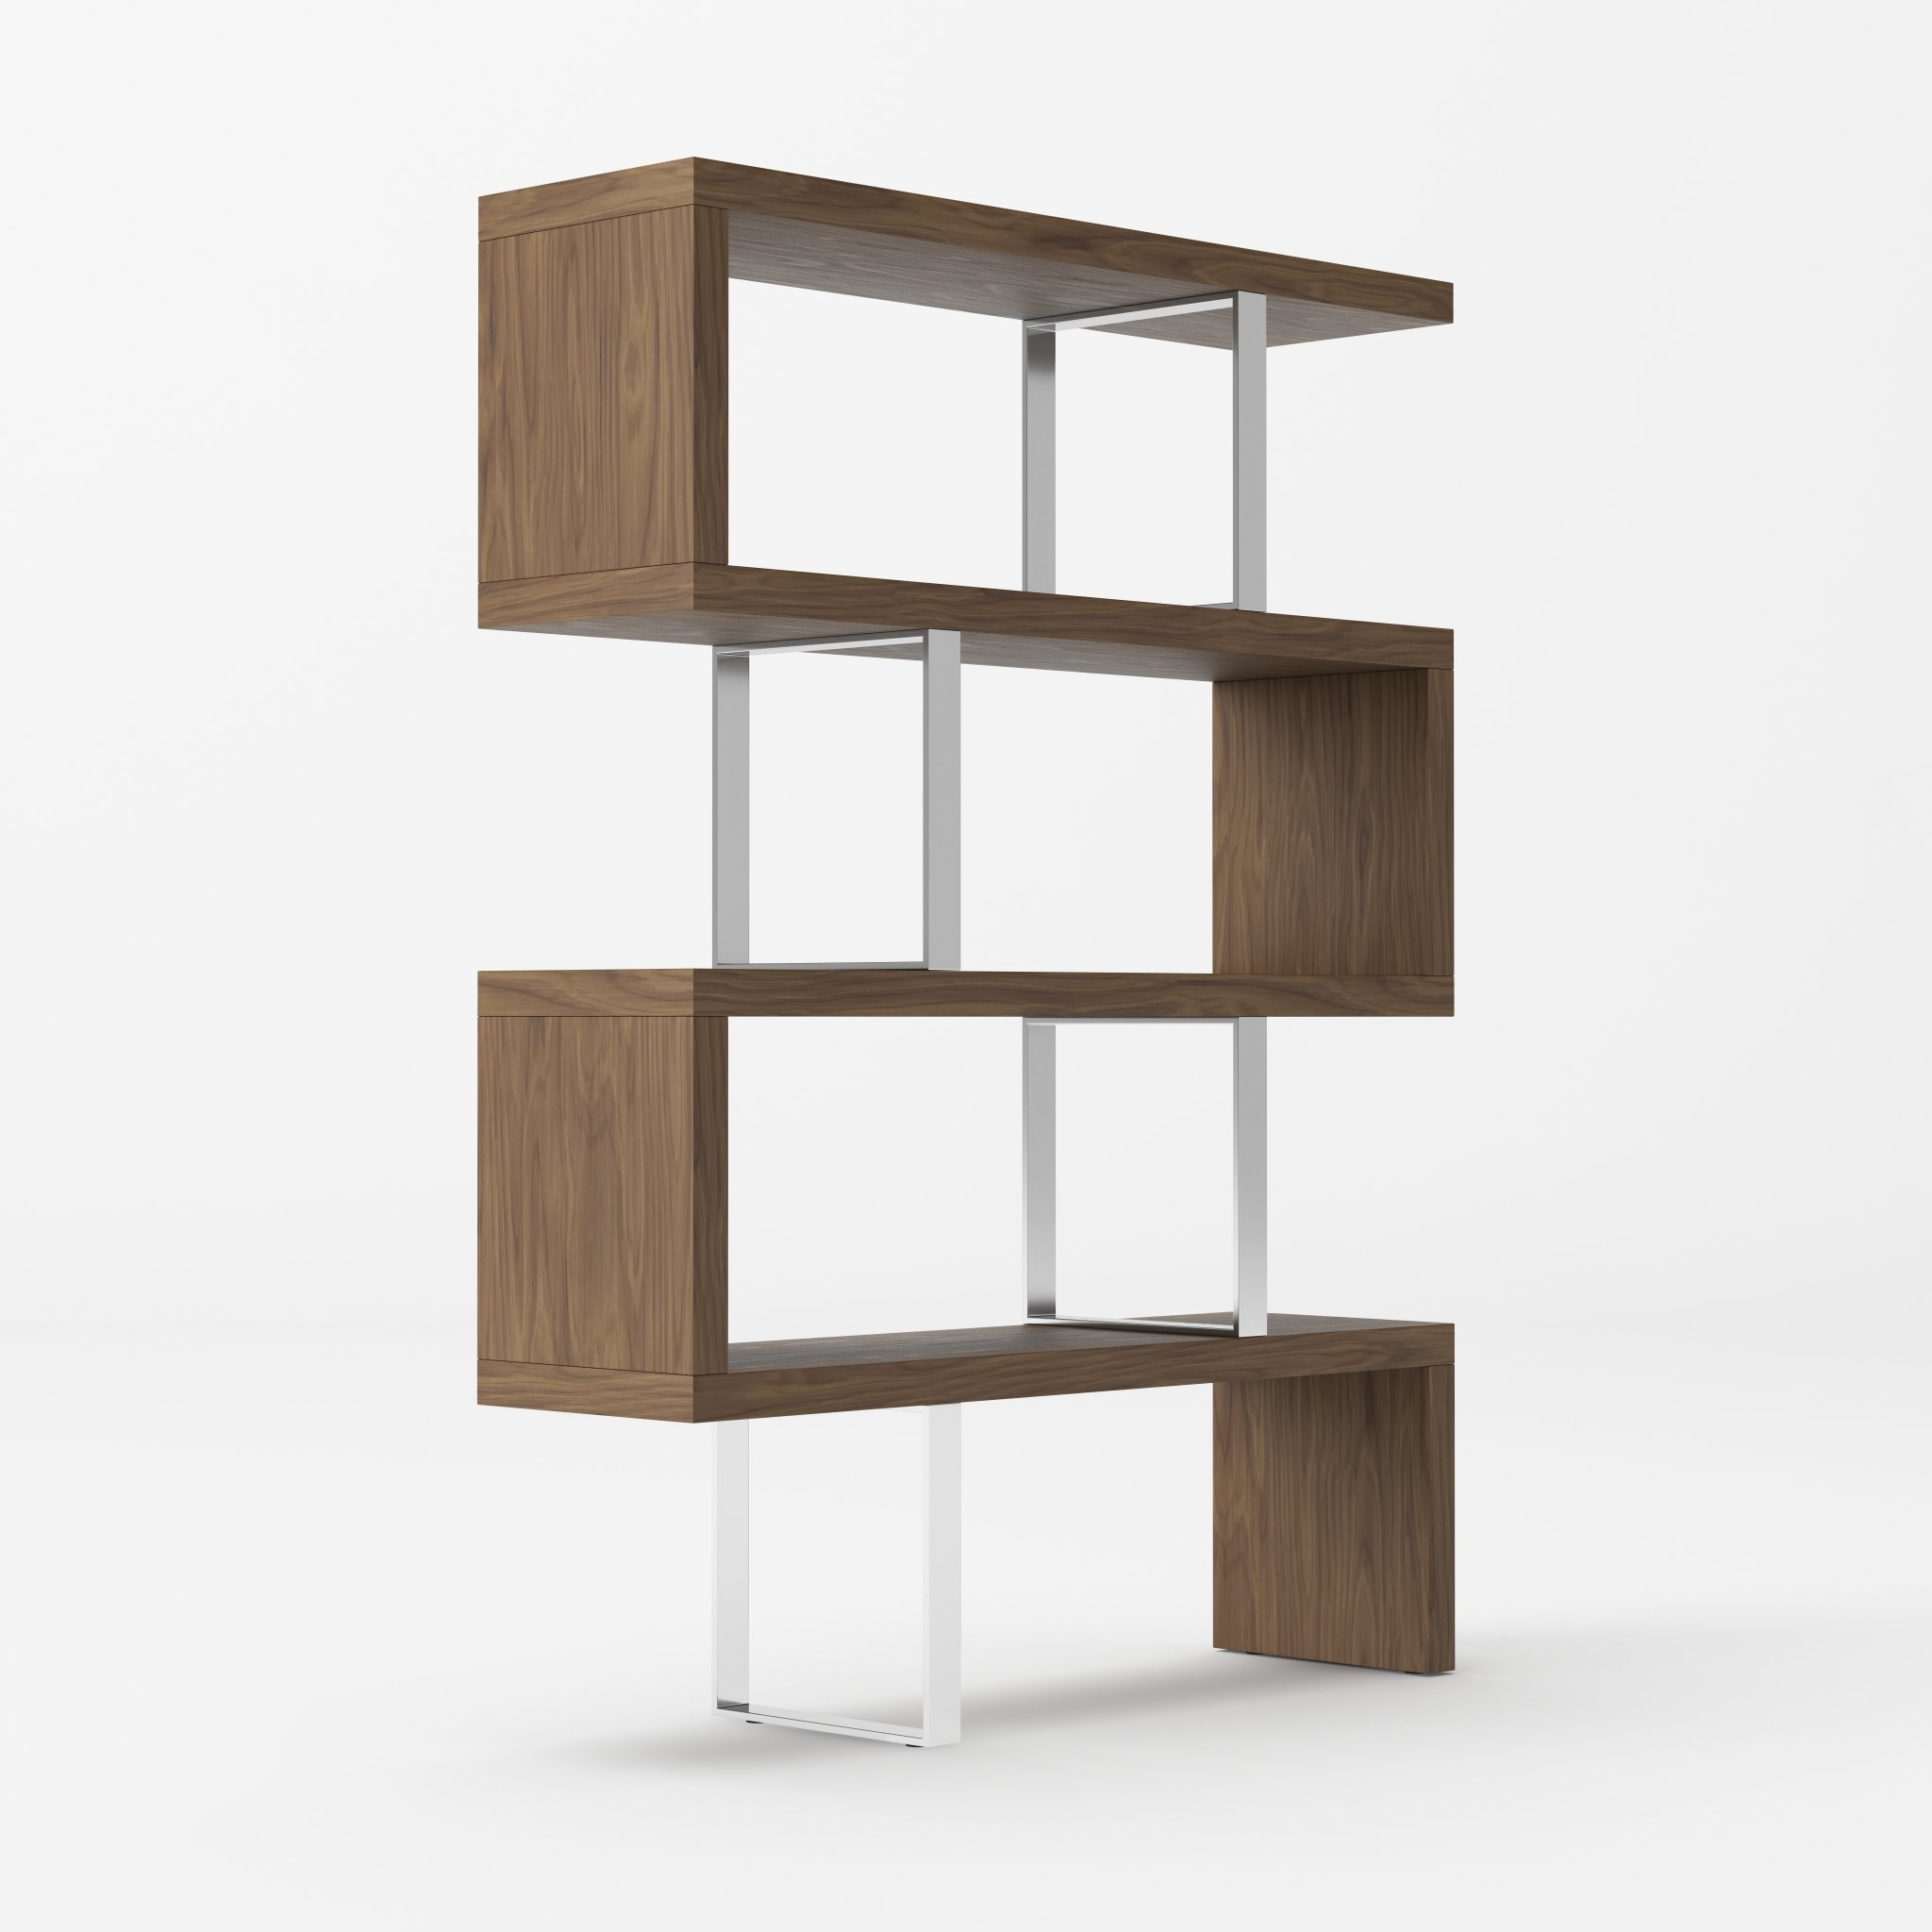 https://woodgreen.ae/wp-content/uploads/2021/10/angel-cerda-nature-life-collection-3079-bookcase-10-1.jpg